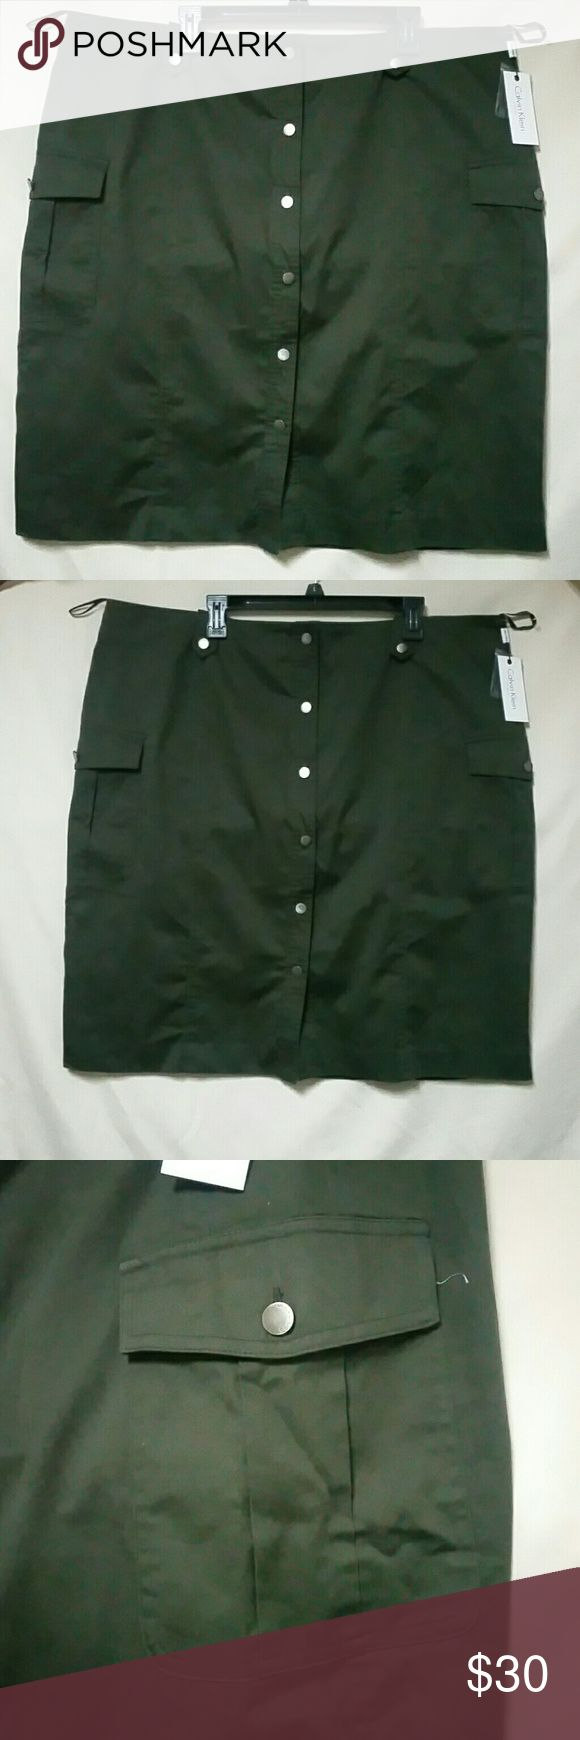 Calvin Klein Military Style Skirt w Cargo Pockets NWT Military Style Skirt w Front Cargo Pockets 6 buttons and mid zipper in Back Olive Green Color (Army Green) waist down measures 25.5 inches Calvin Klein Skirts